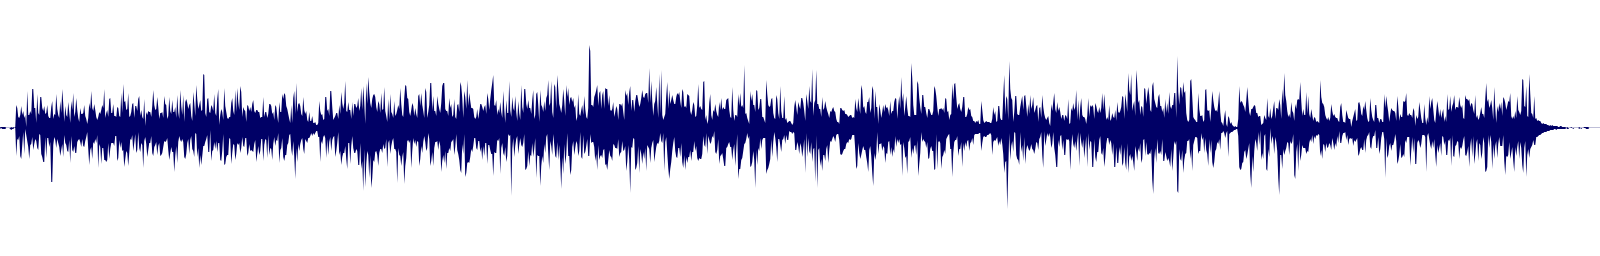 waveform of track #125451